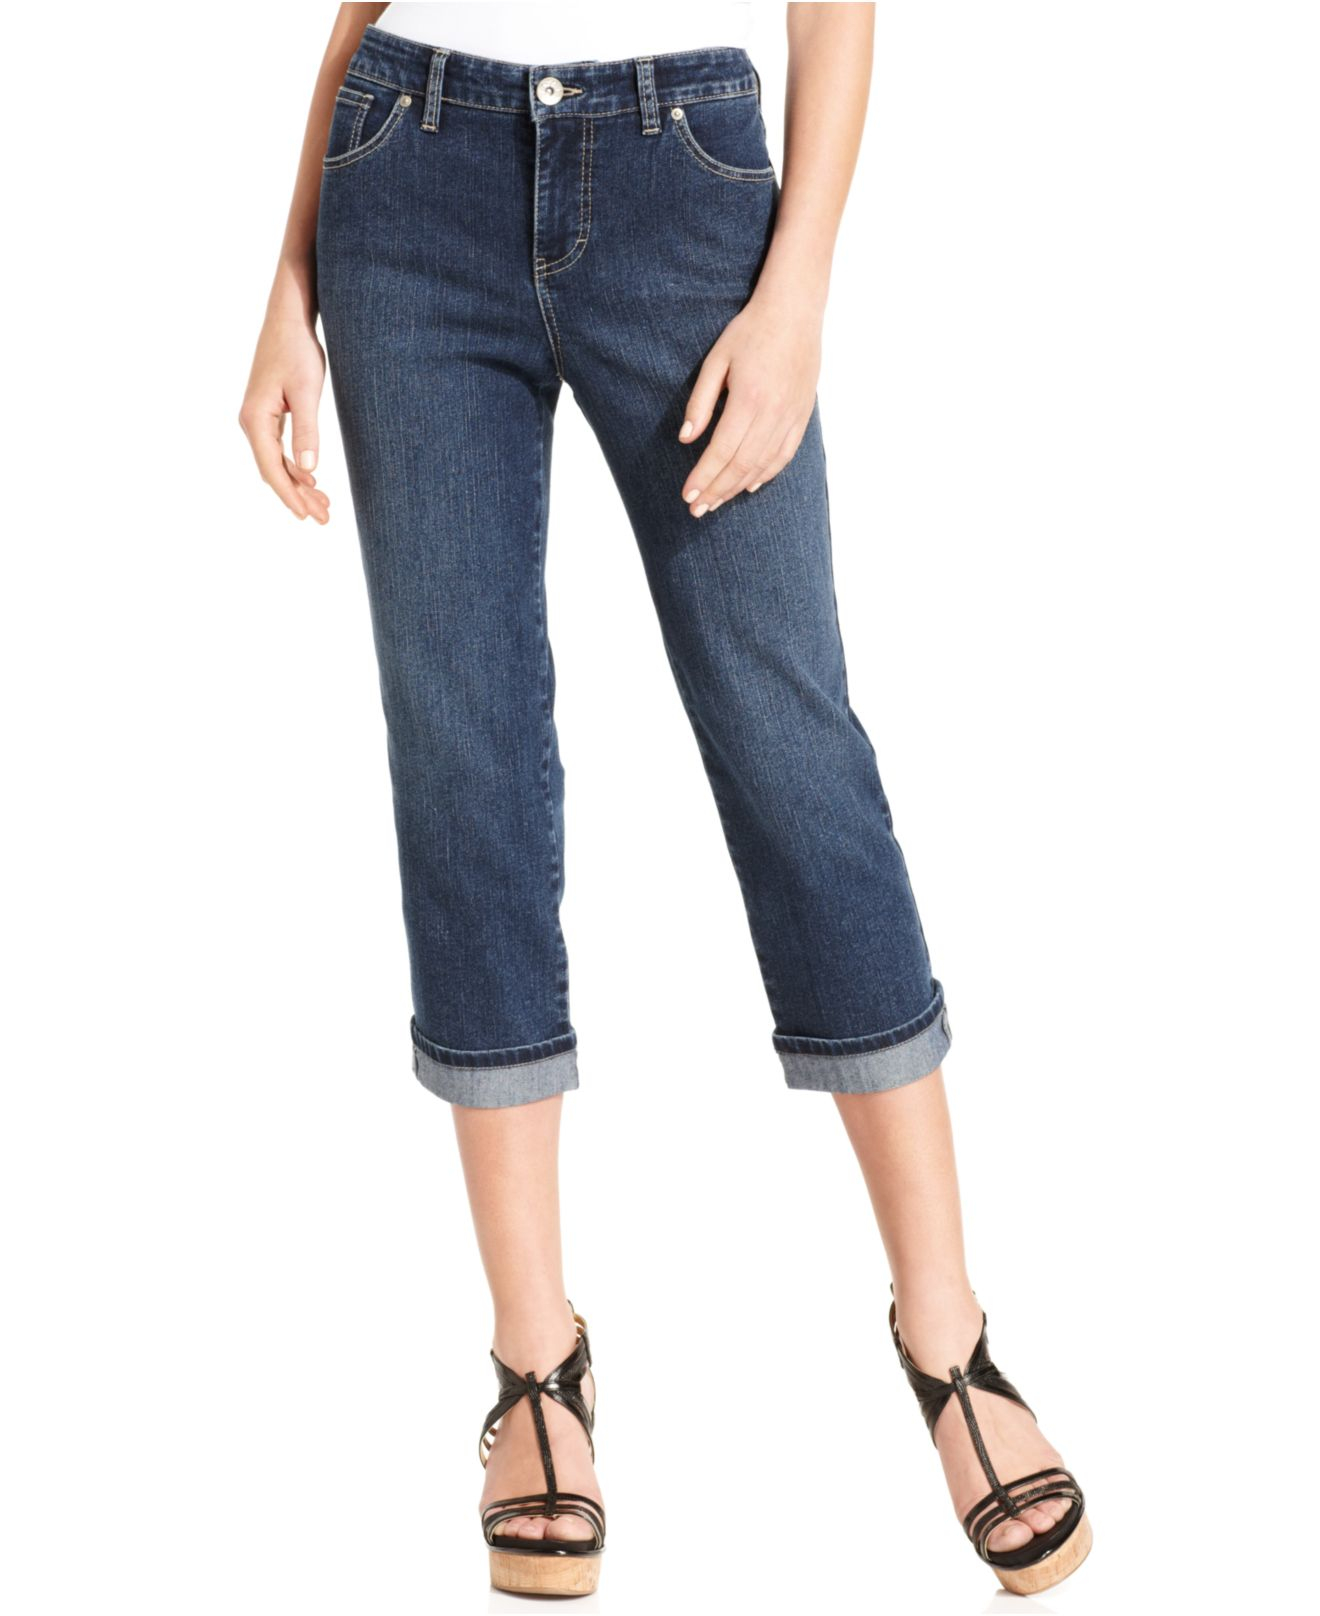 FREE SHIPPING AVAILABLE! Shop gravitybox.ga and save on Tummy Control Jeans.